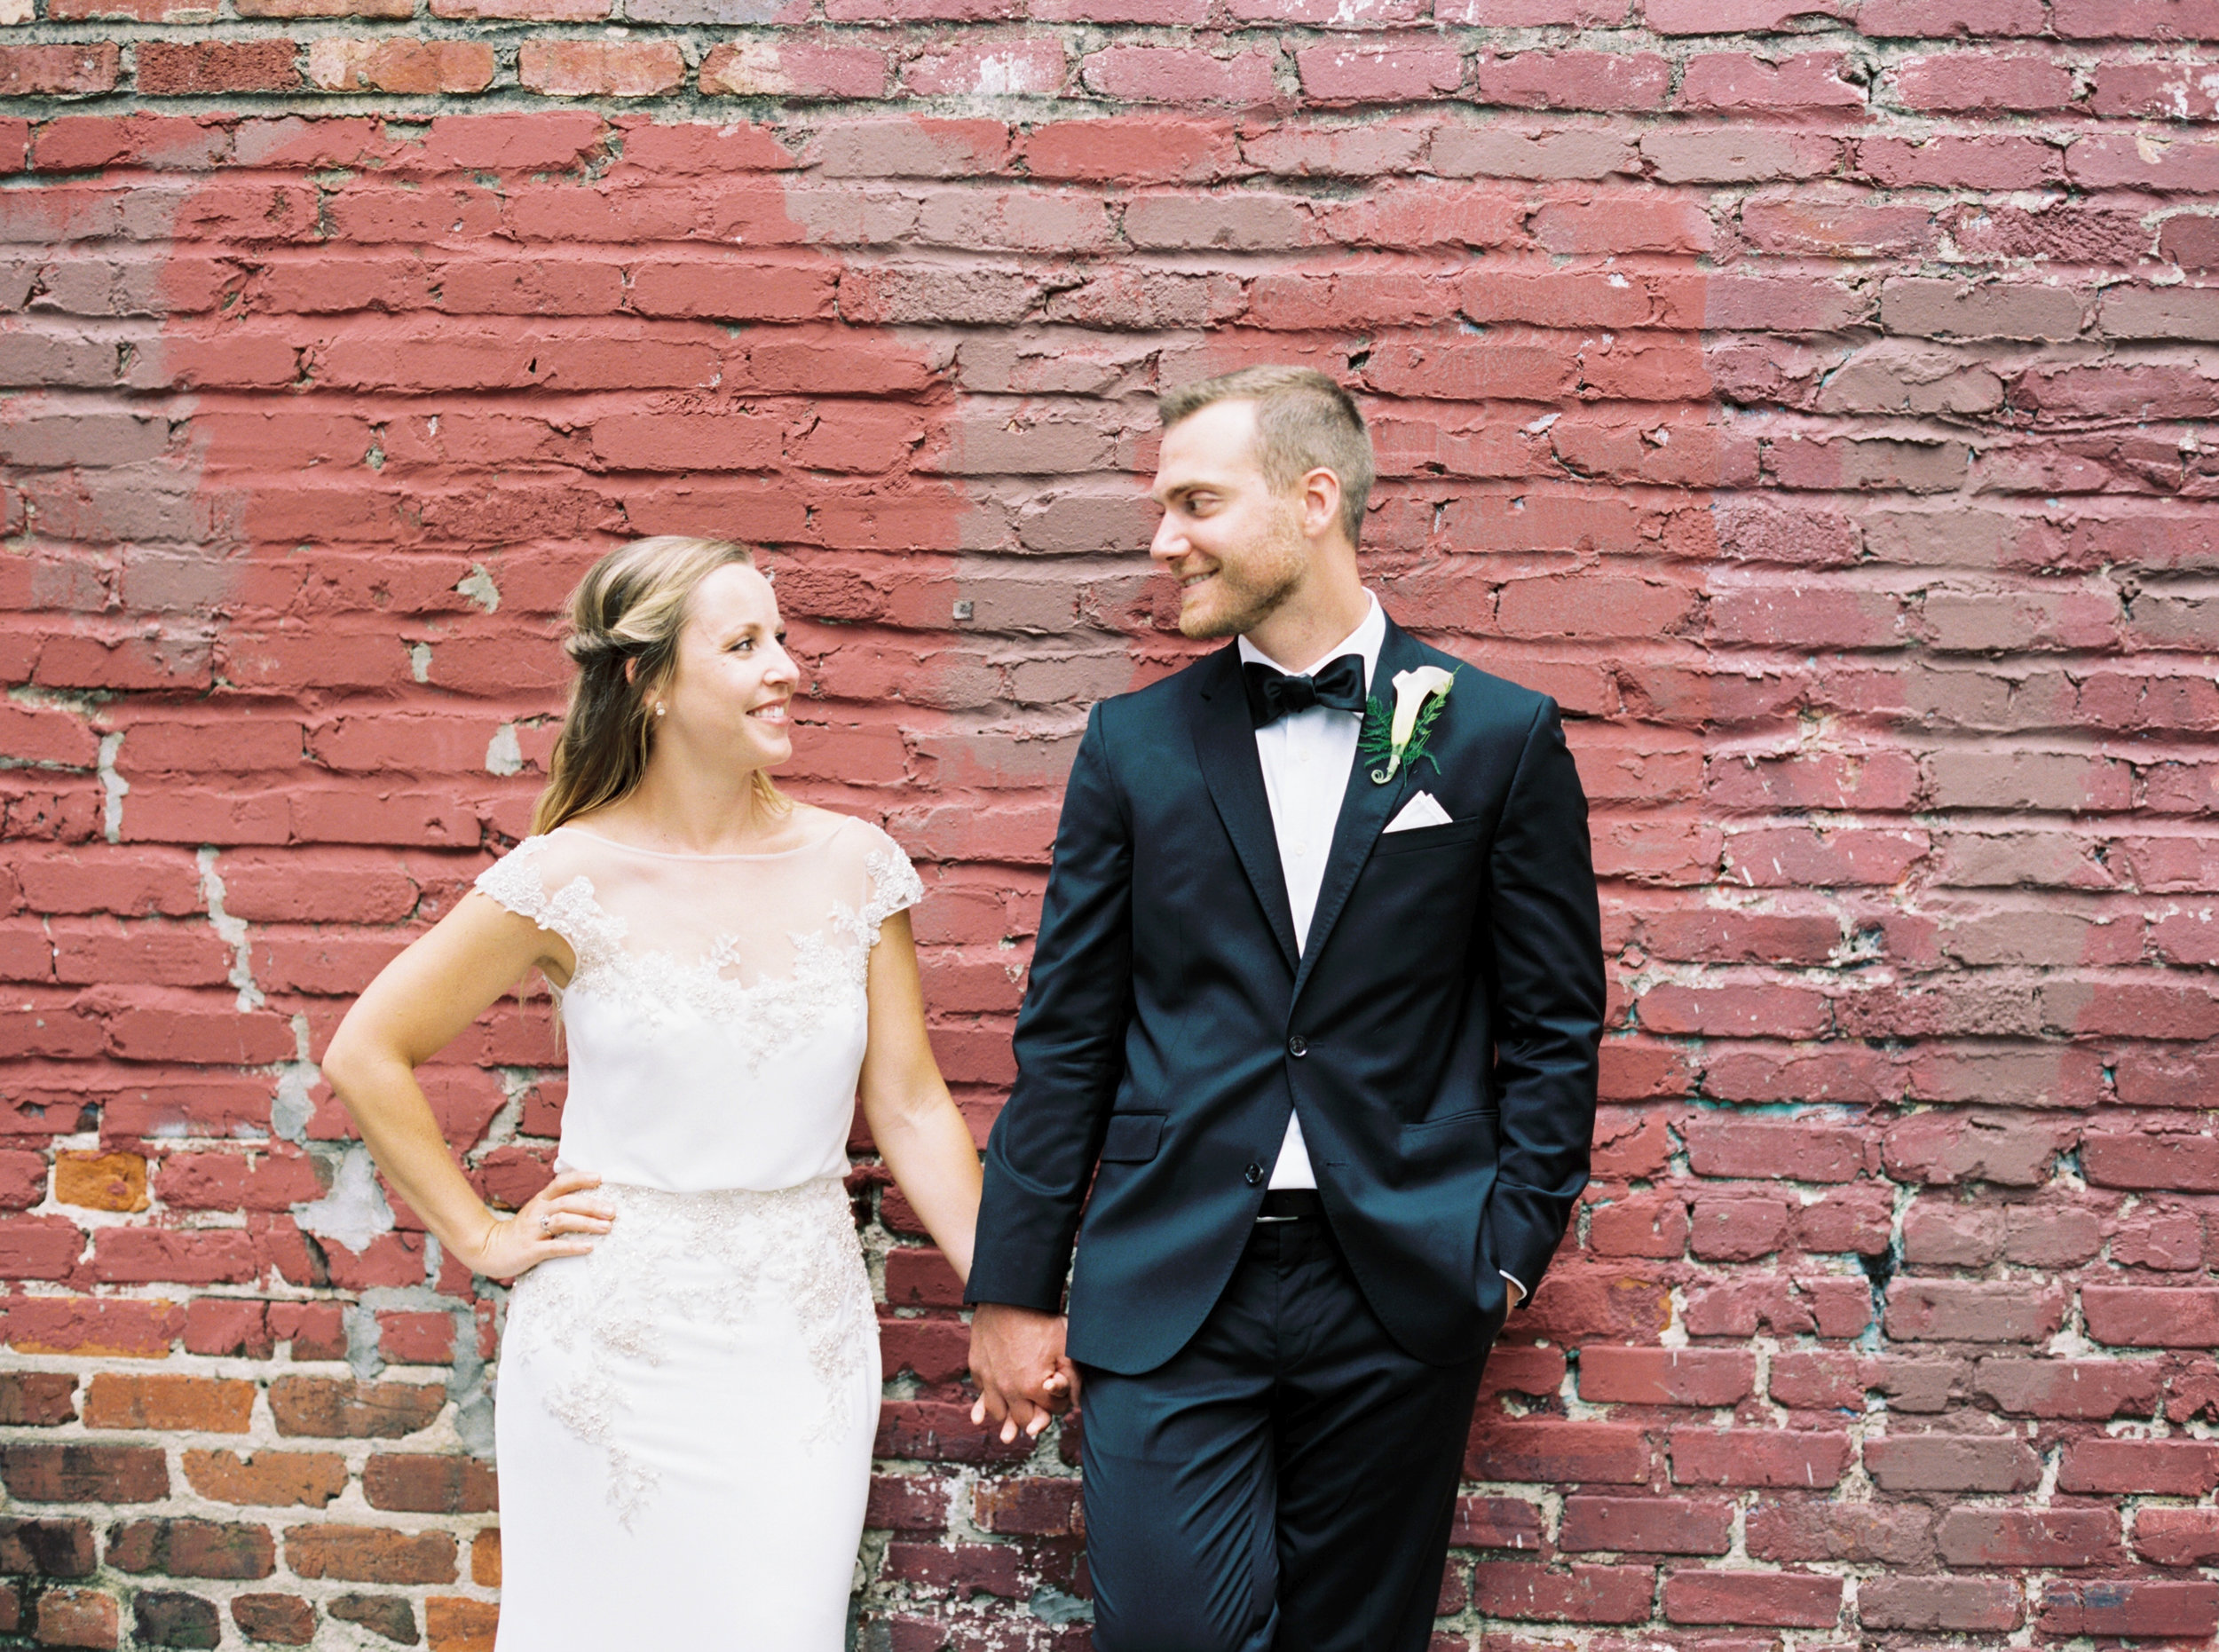 Katie_Matt_Wedding_Knoxville_Botanical_Garden_Abigail_Malone_photography-378.jpg